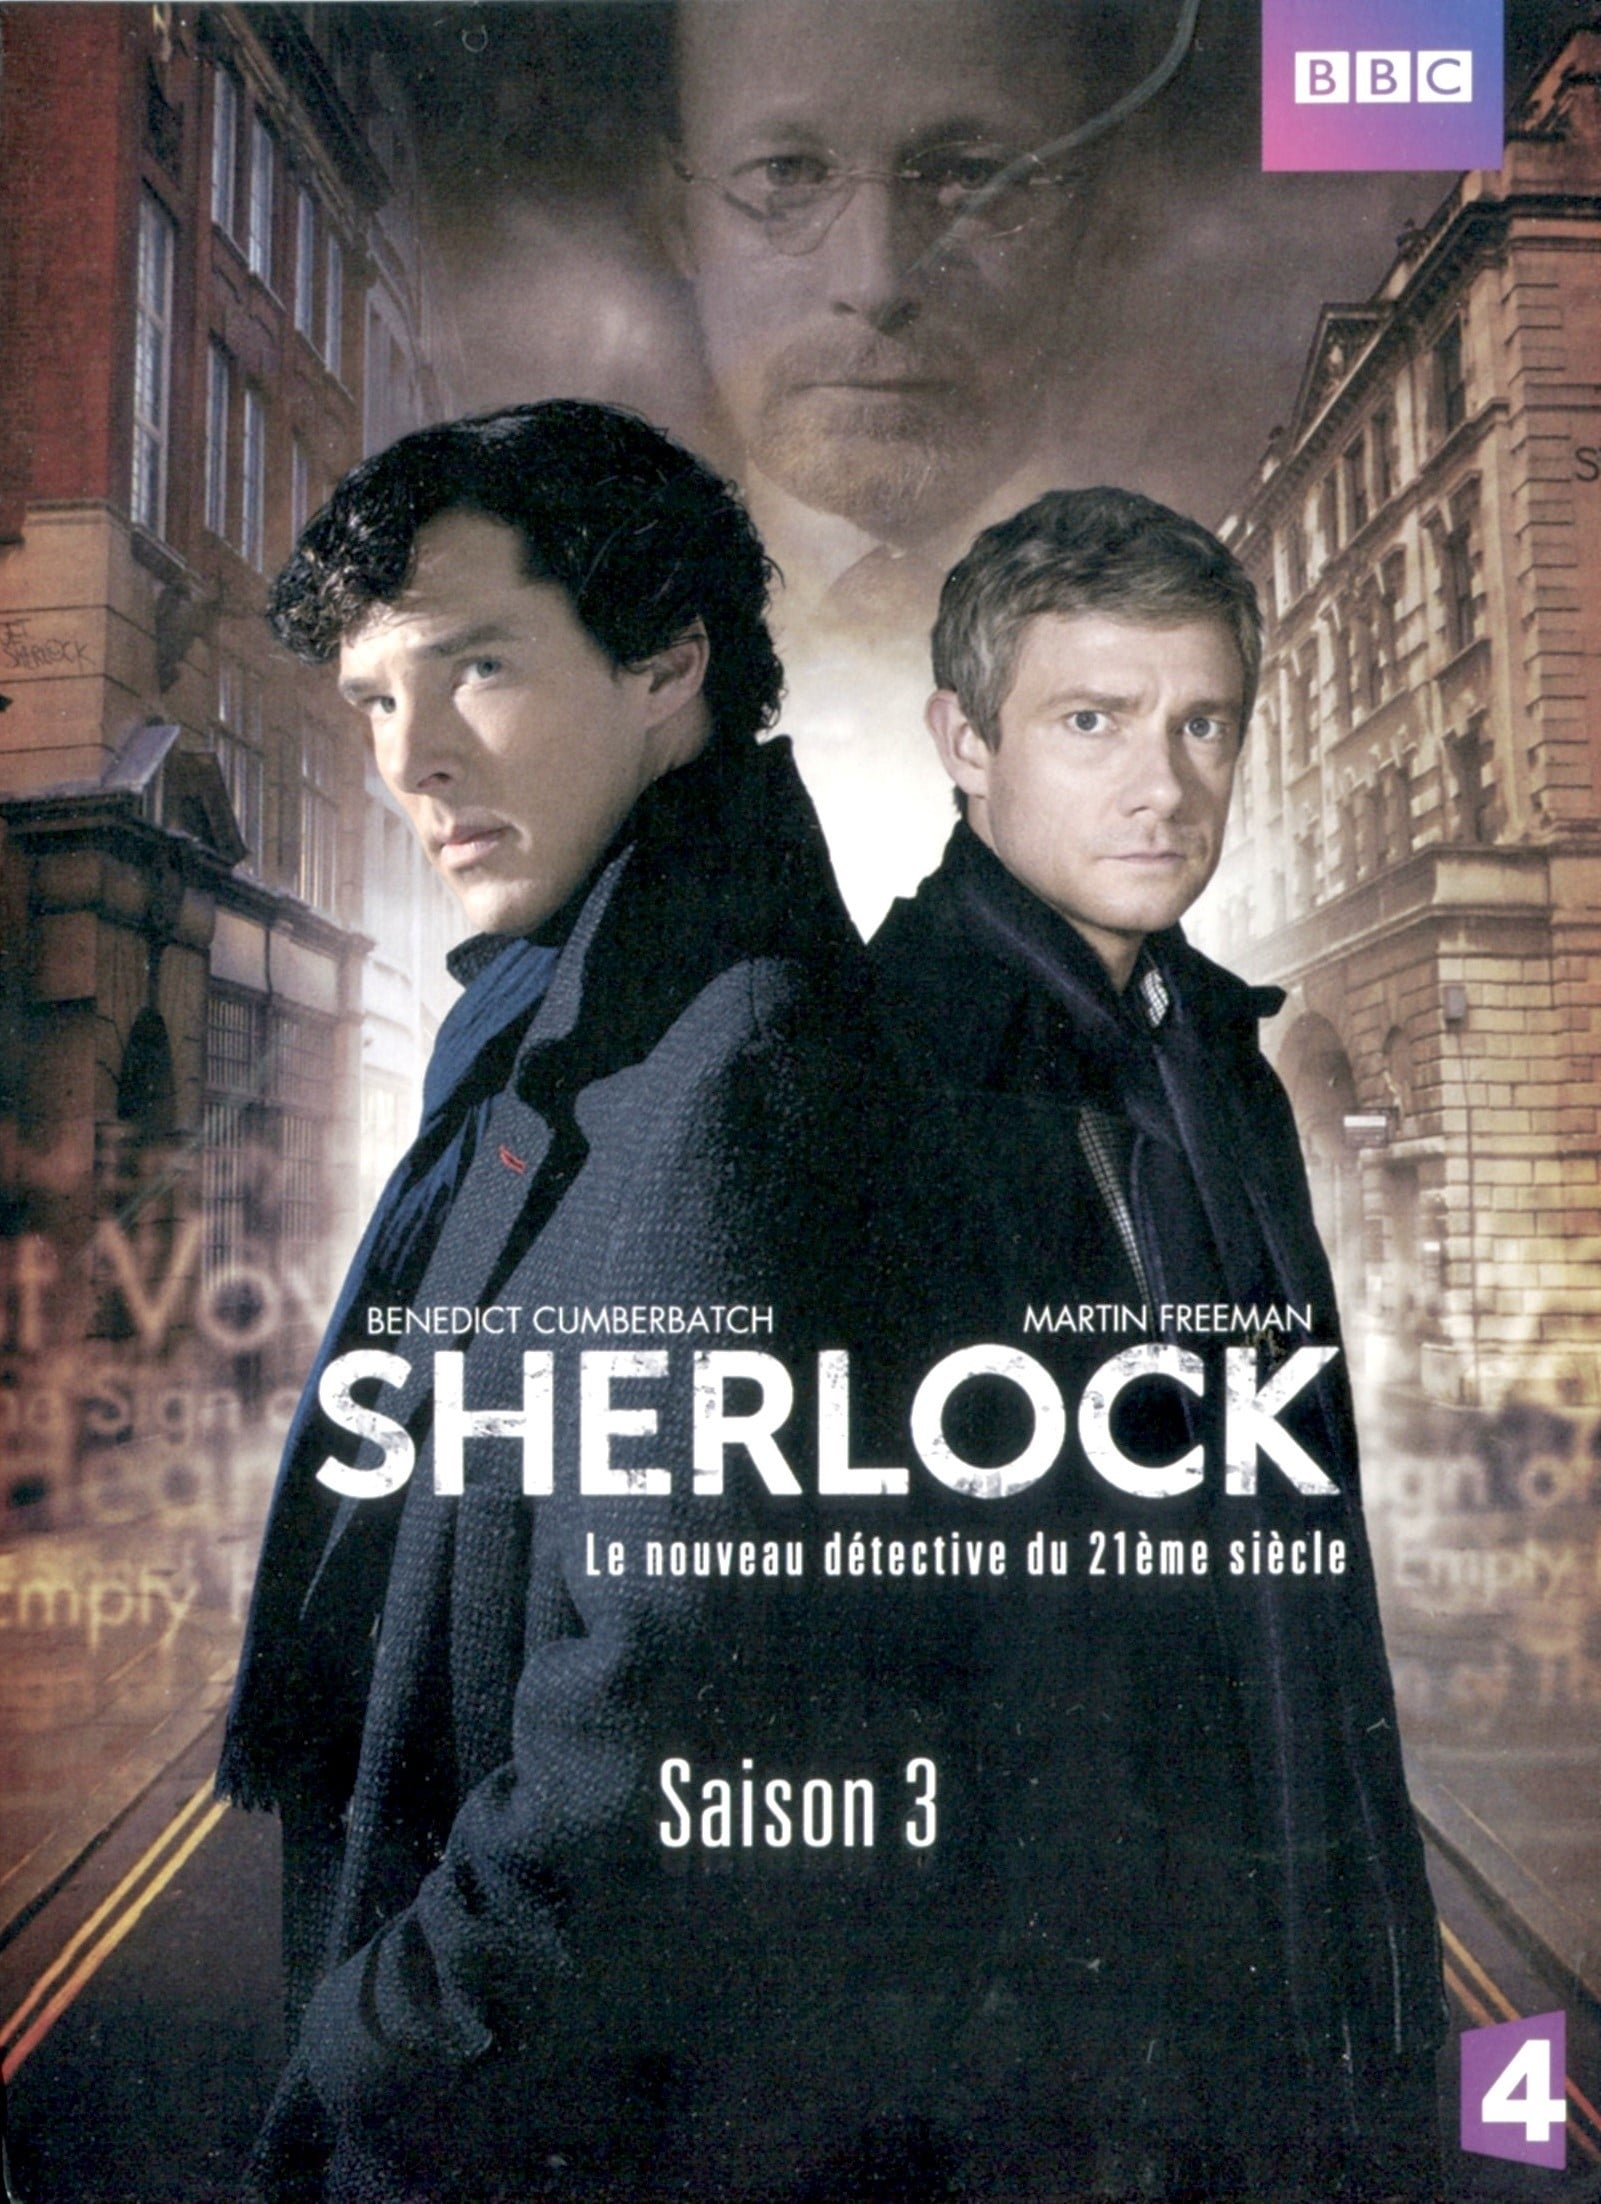 Sherlock Saison 3 Streaming : sherlock, saison, streaming, Sherlock, Streaming, Voirfilms, Serie